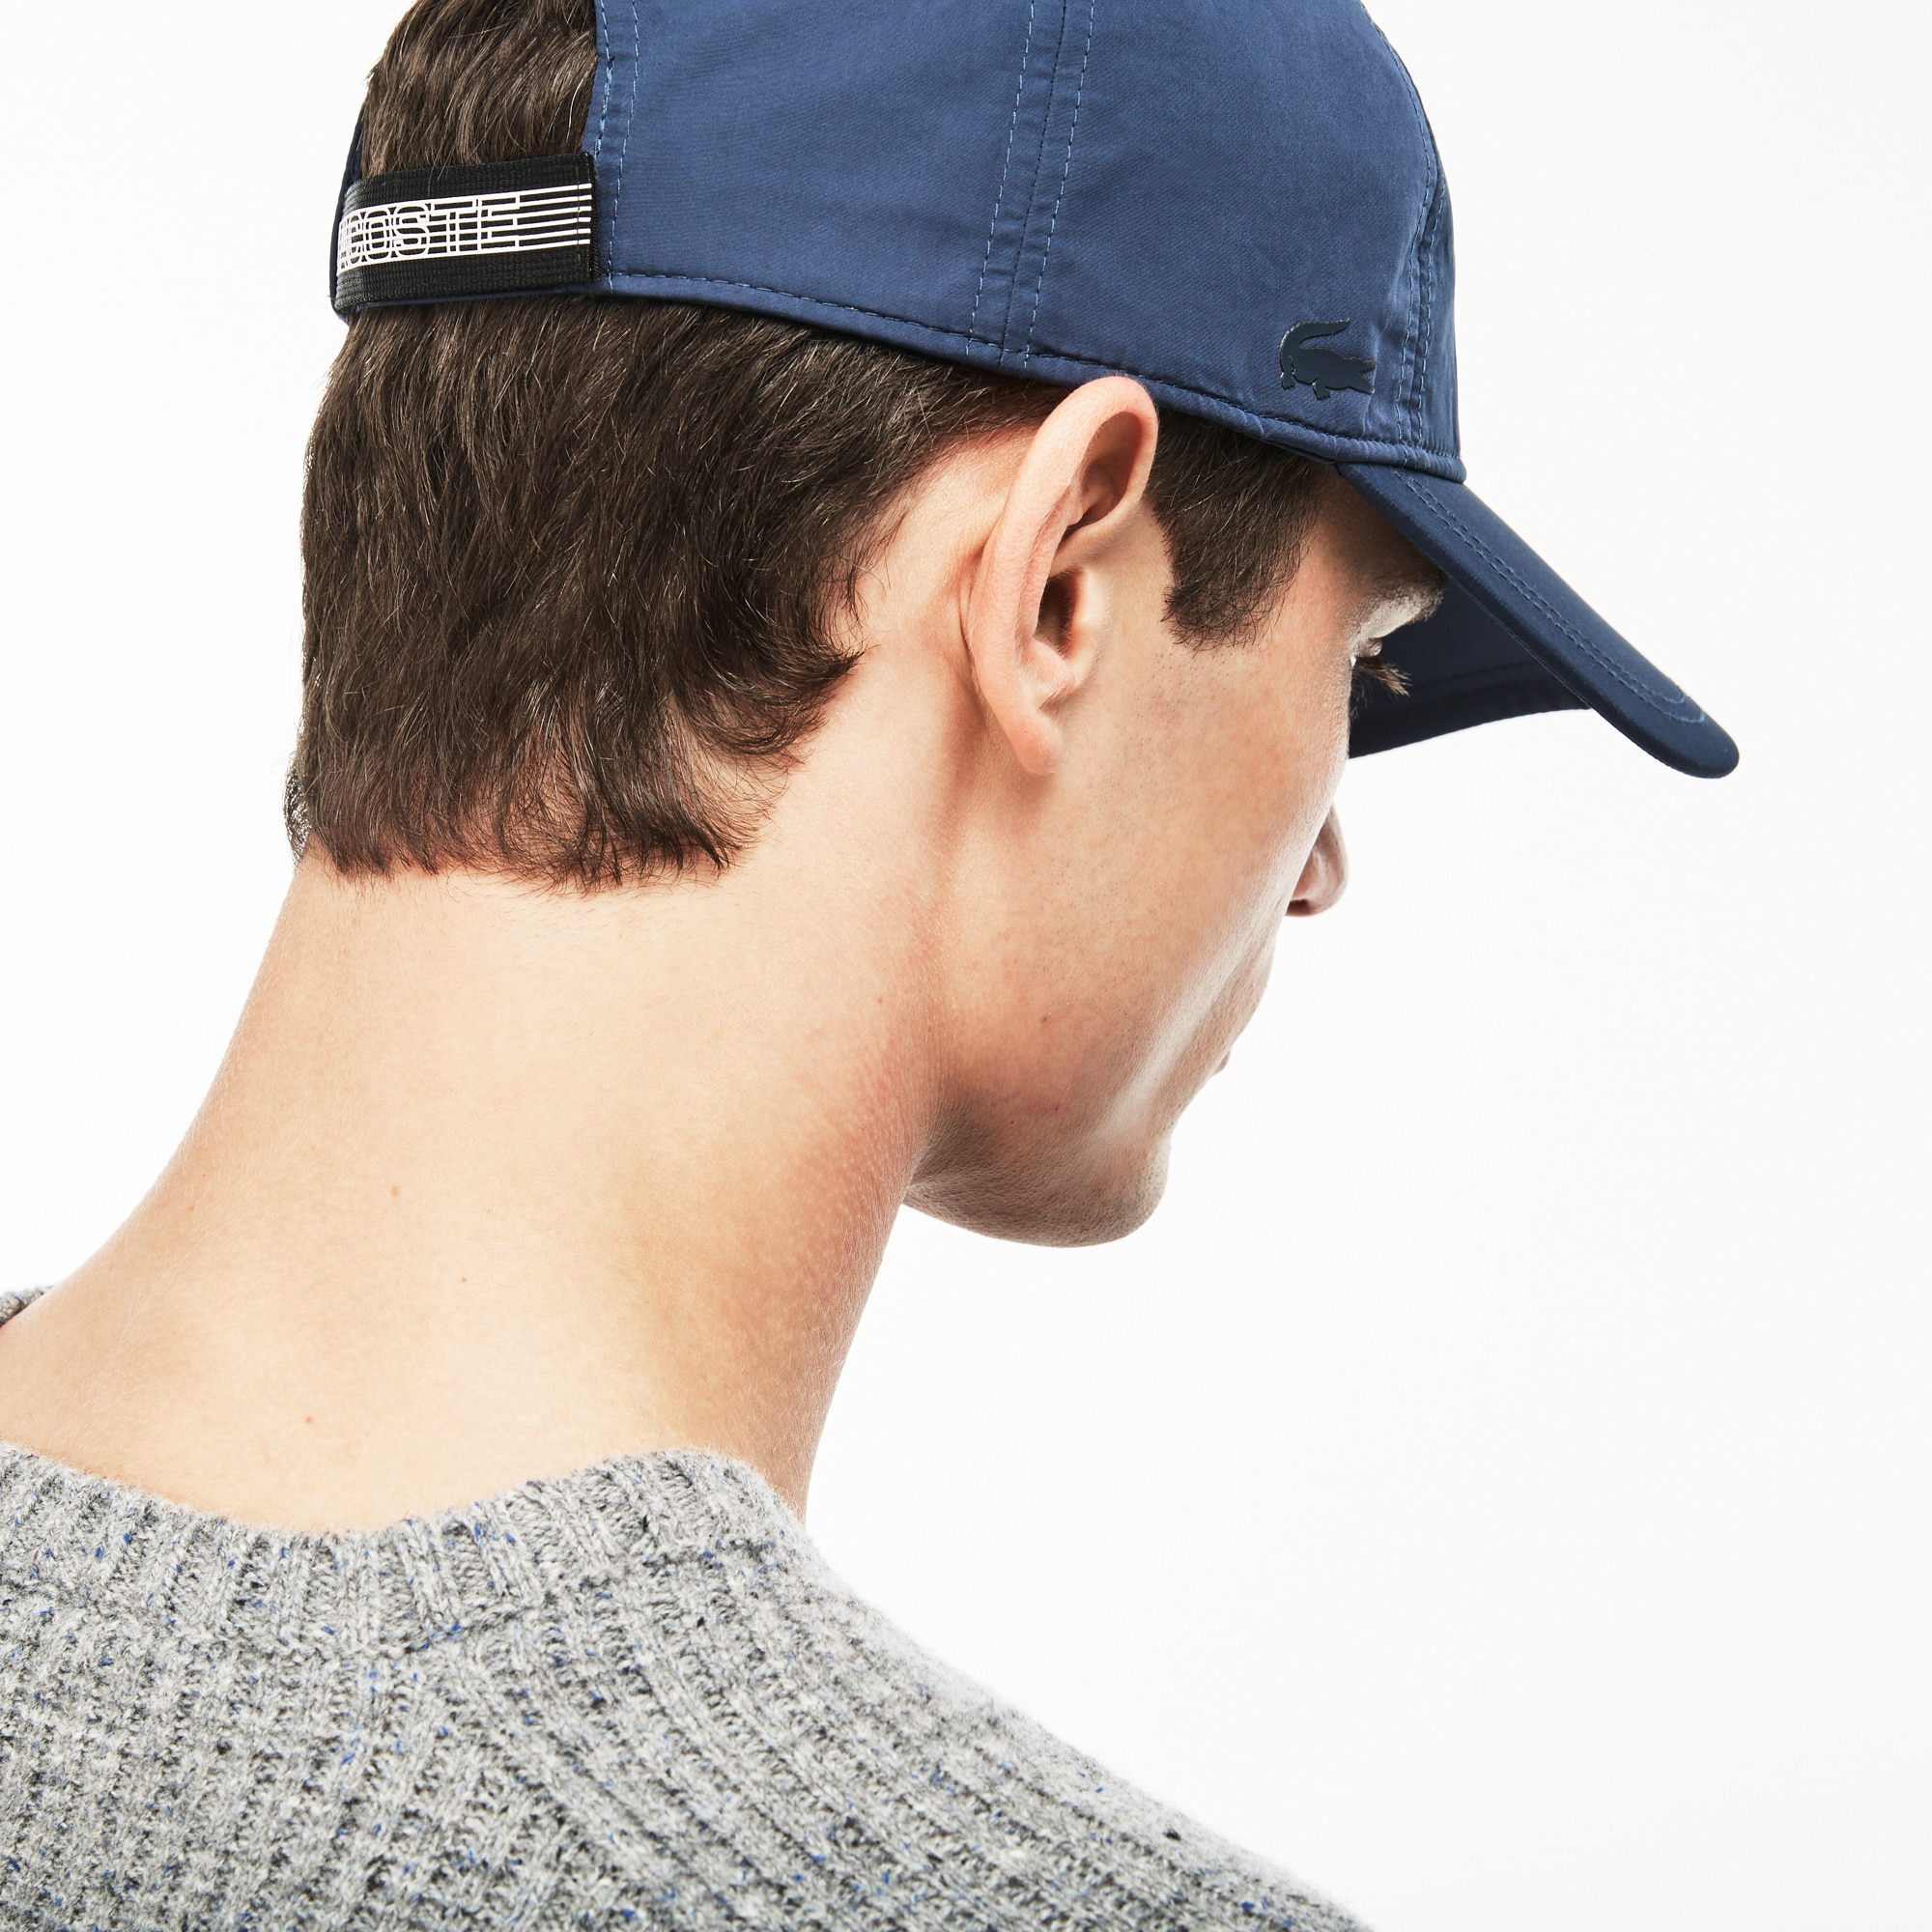 Men's Baseball Cap With Lacoste Buckle In Back